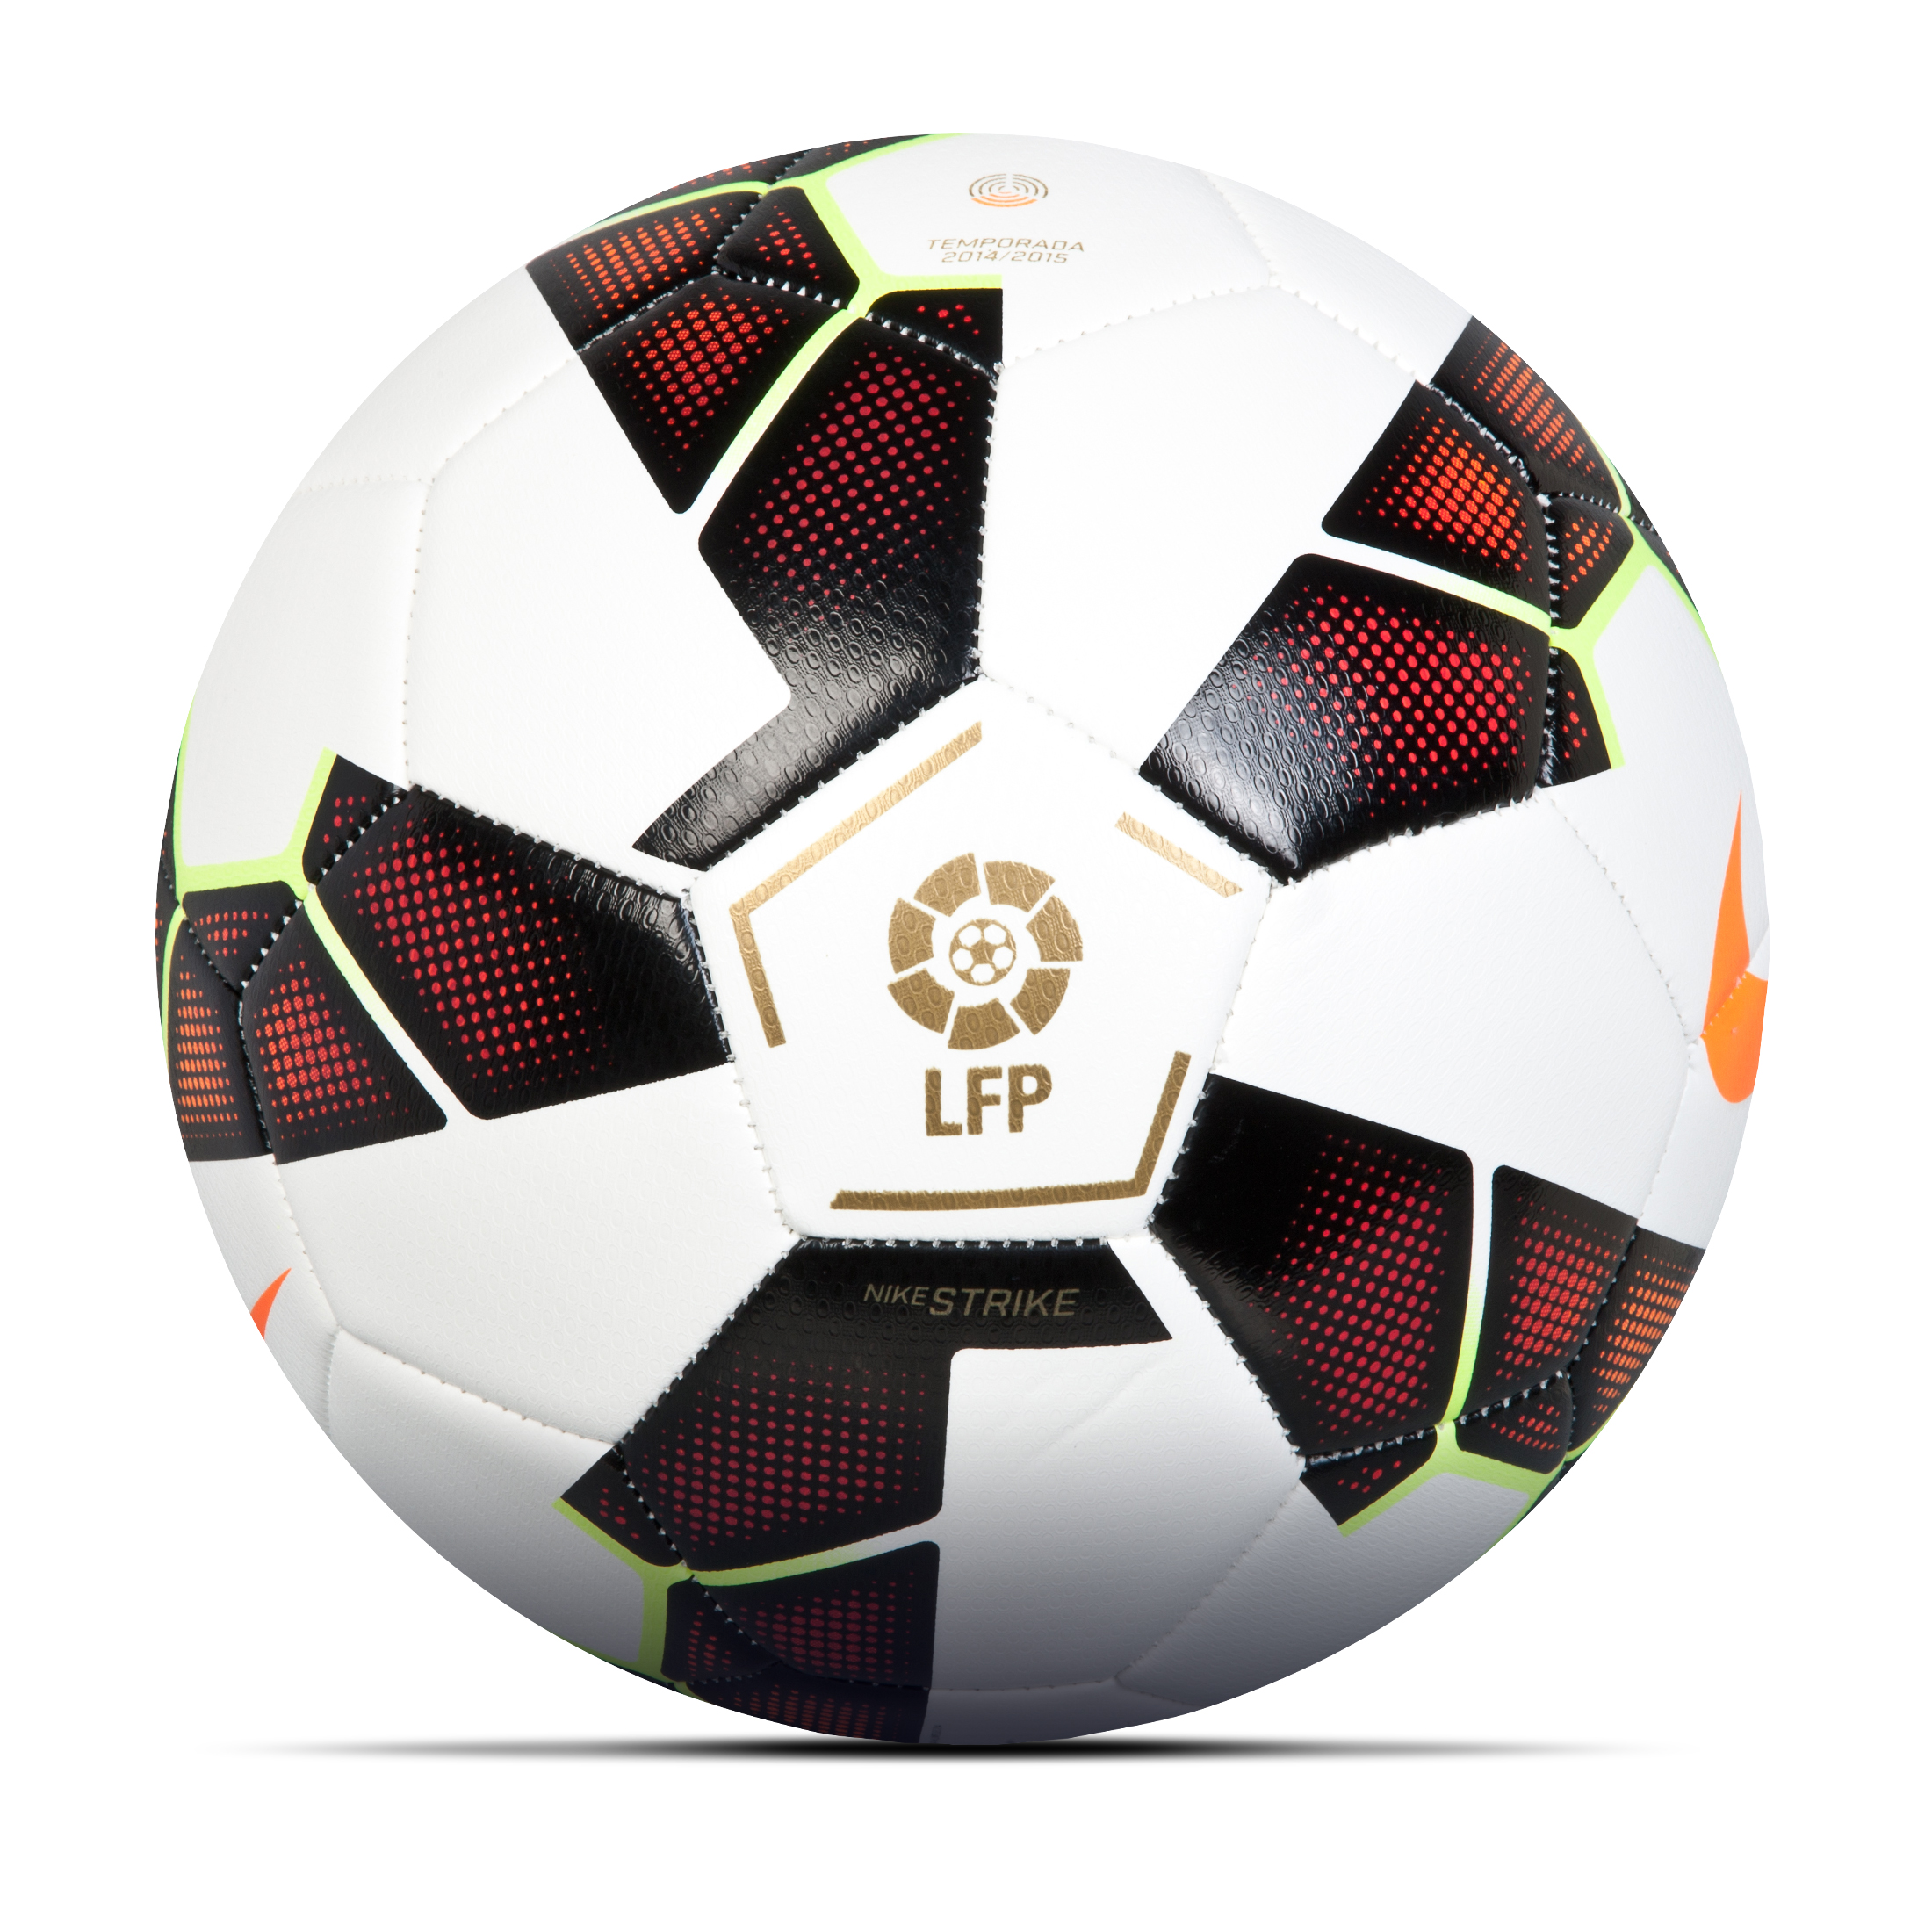 Nike Ordem 2 LFP Official Match ball 14/15 White